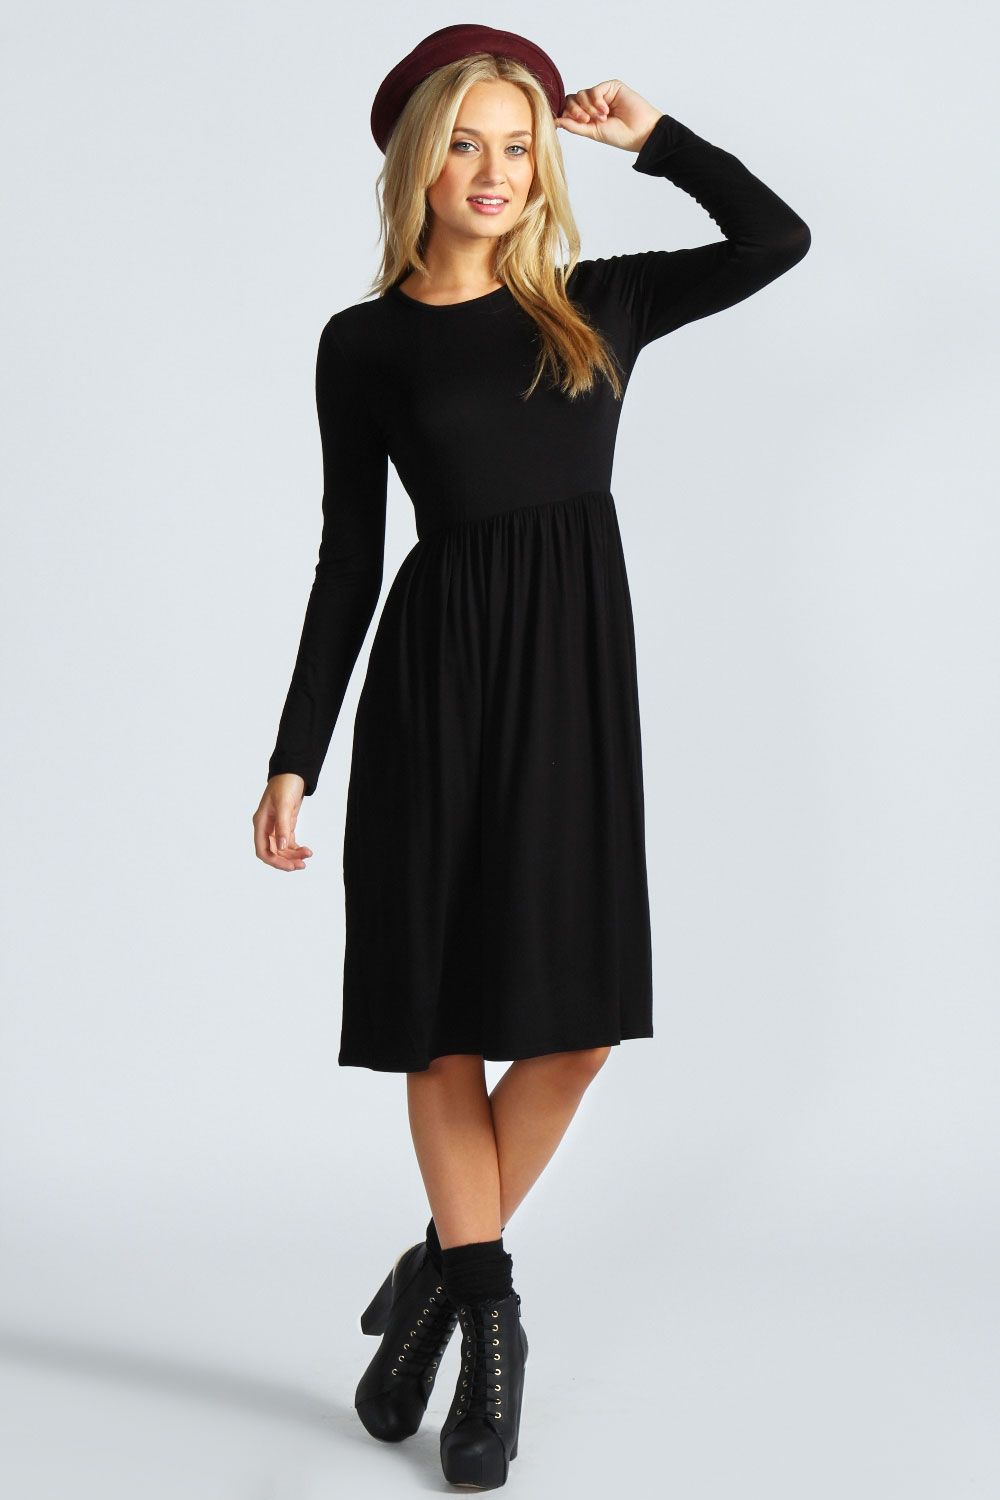 Long sleeve midi dress f a s h i o n pinterest midi dresses